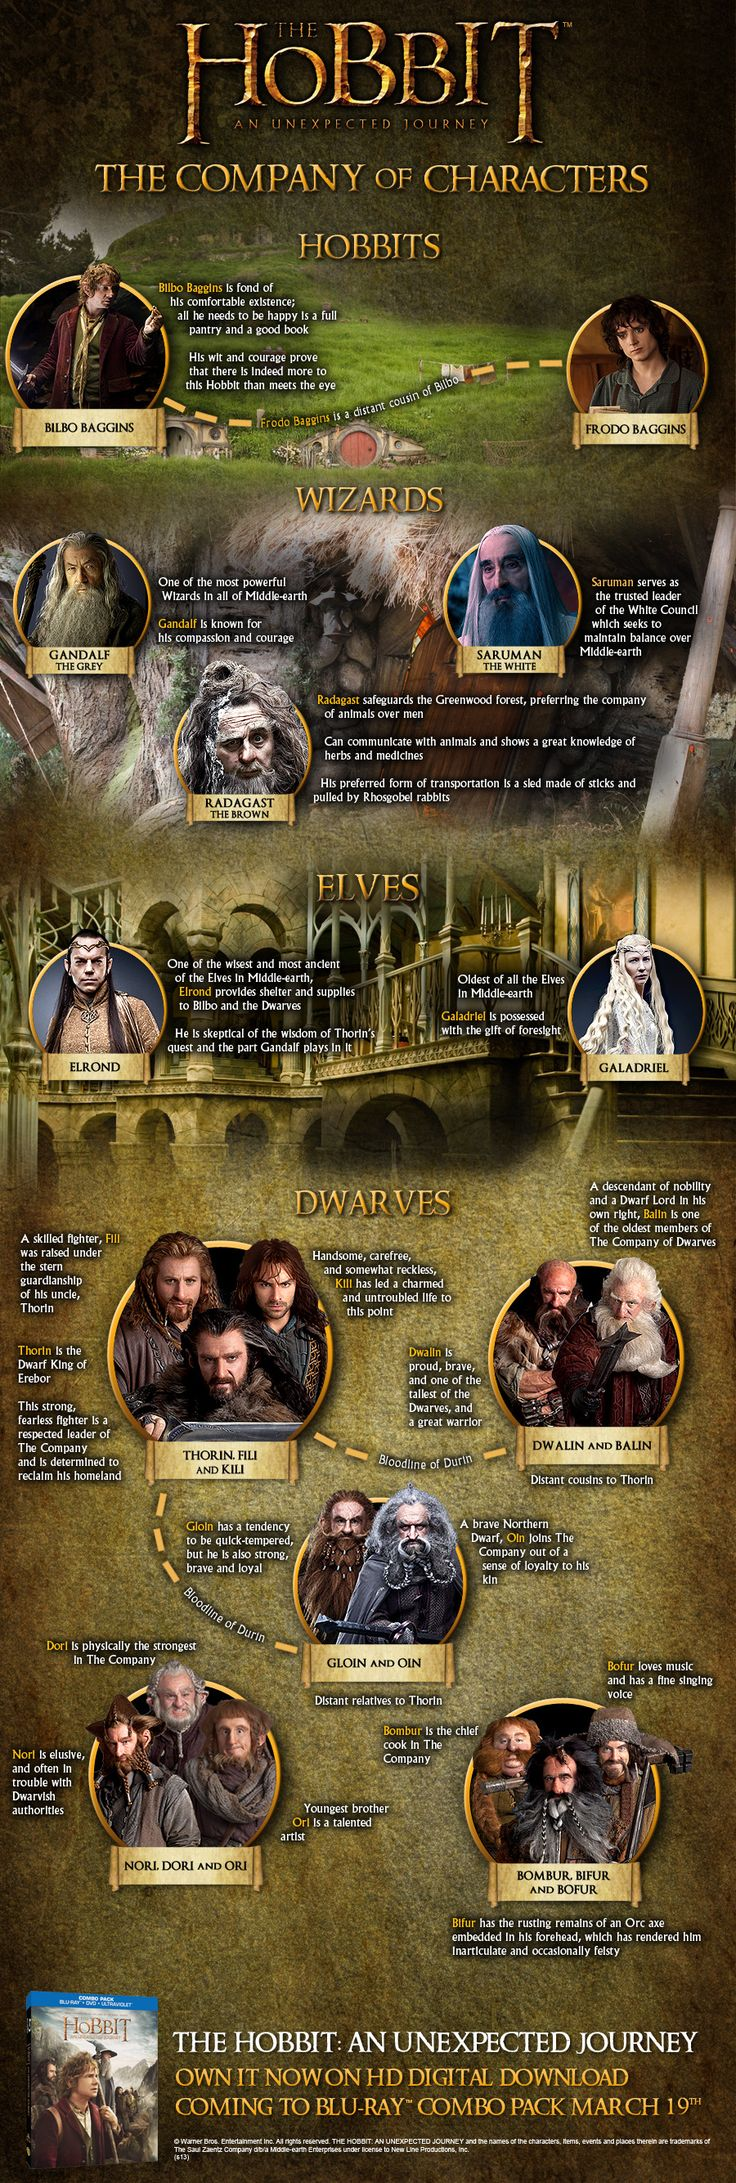 "How To Make Sense Of All The Characters From ""The Hobbit"""